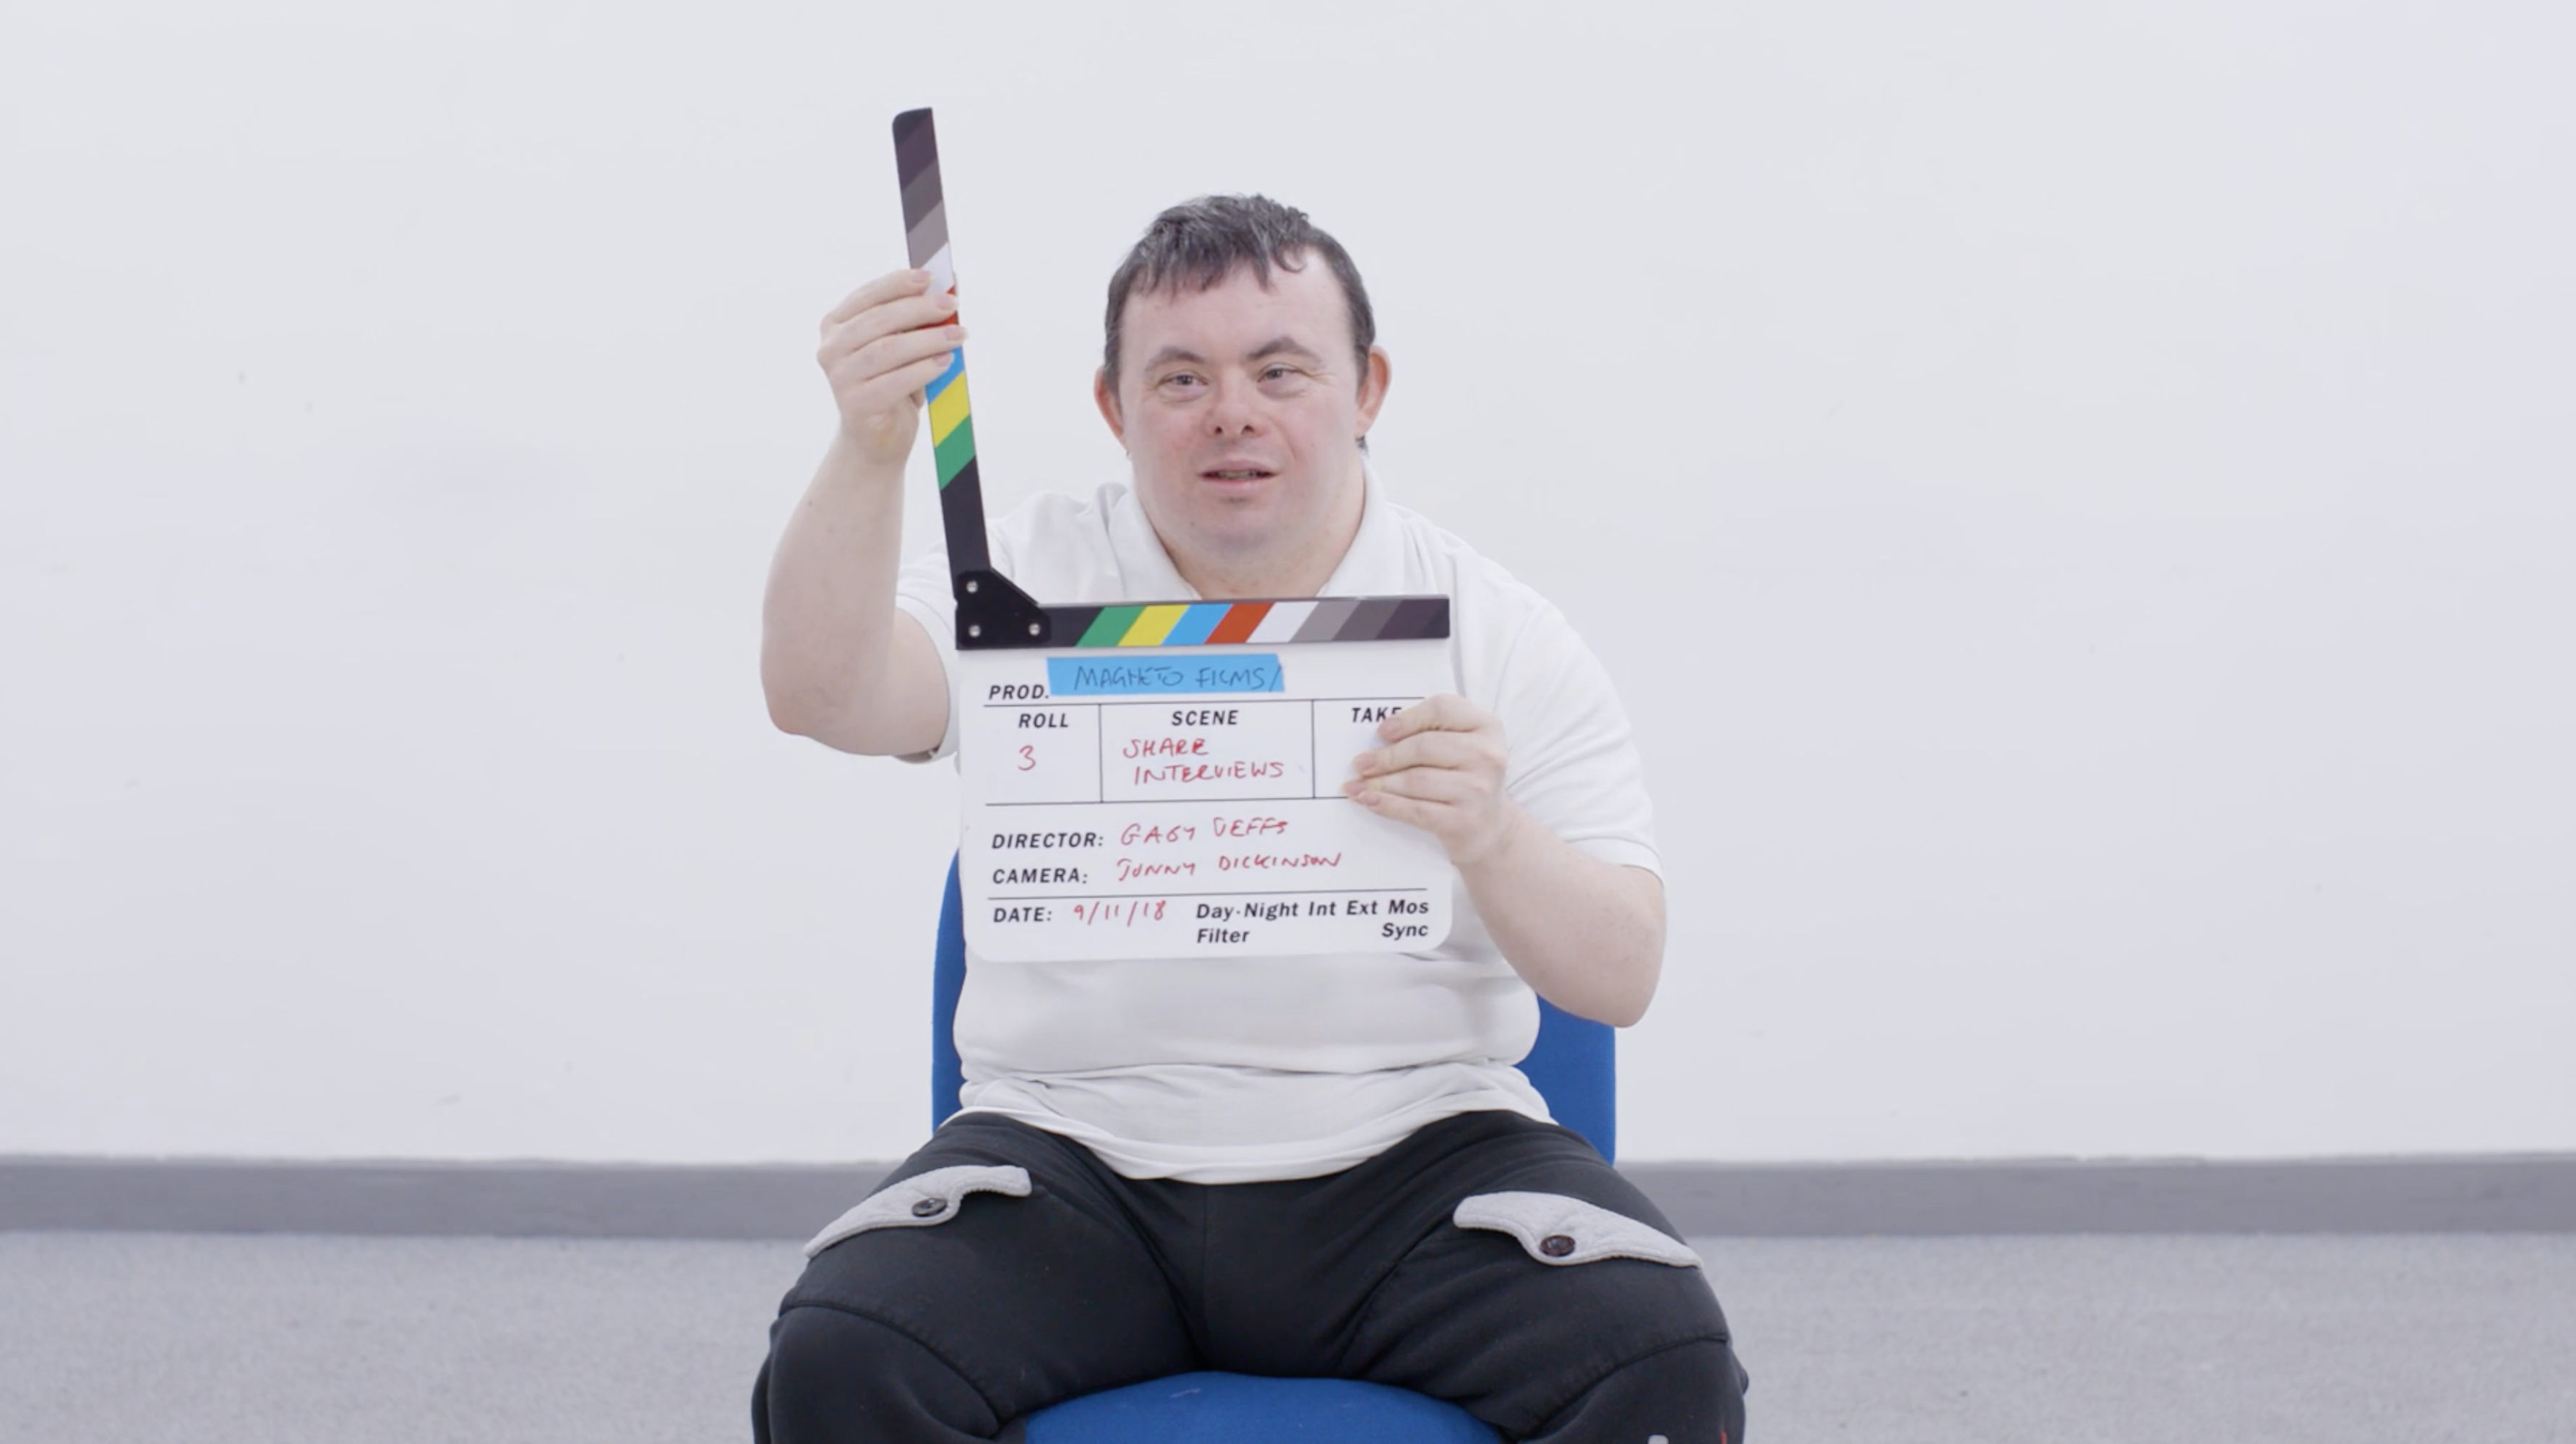 charity video production | Magneto Films | London